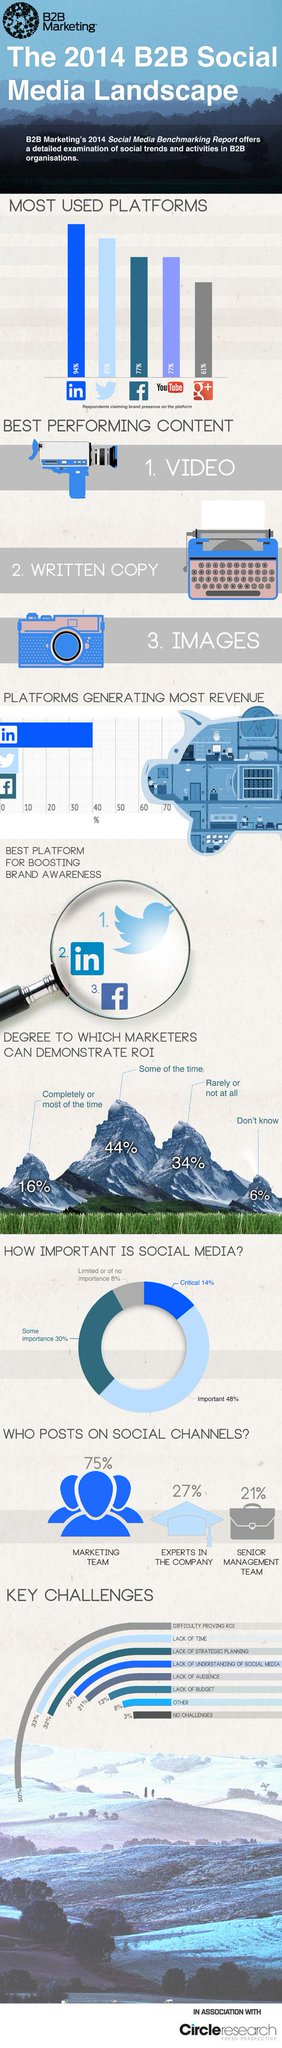 Our 2014 social media infographic showed 94% of B2B brands have a presence on LinkedIn http://t.co/SSjuPKN00N http://t.co/UBTwBqhAFB